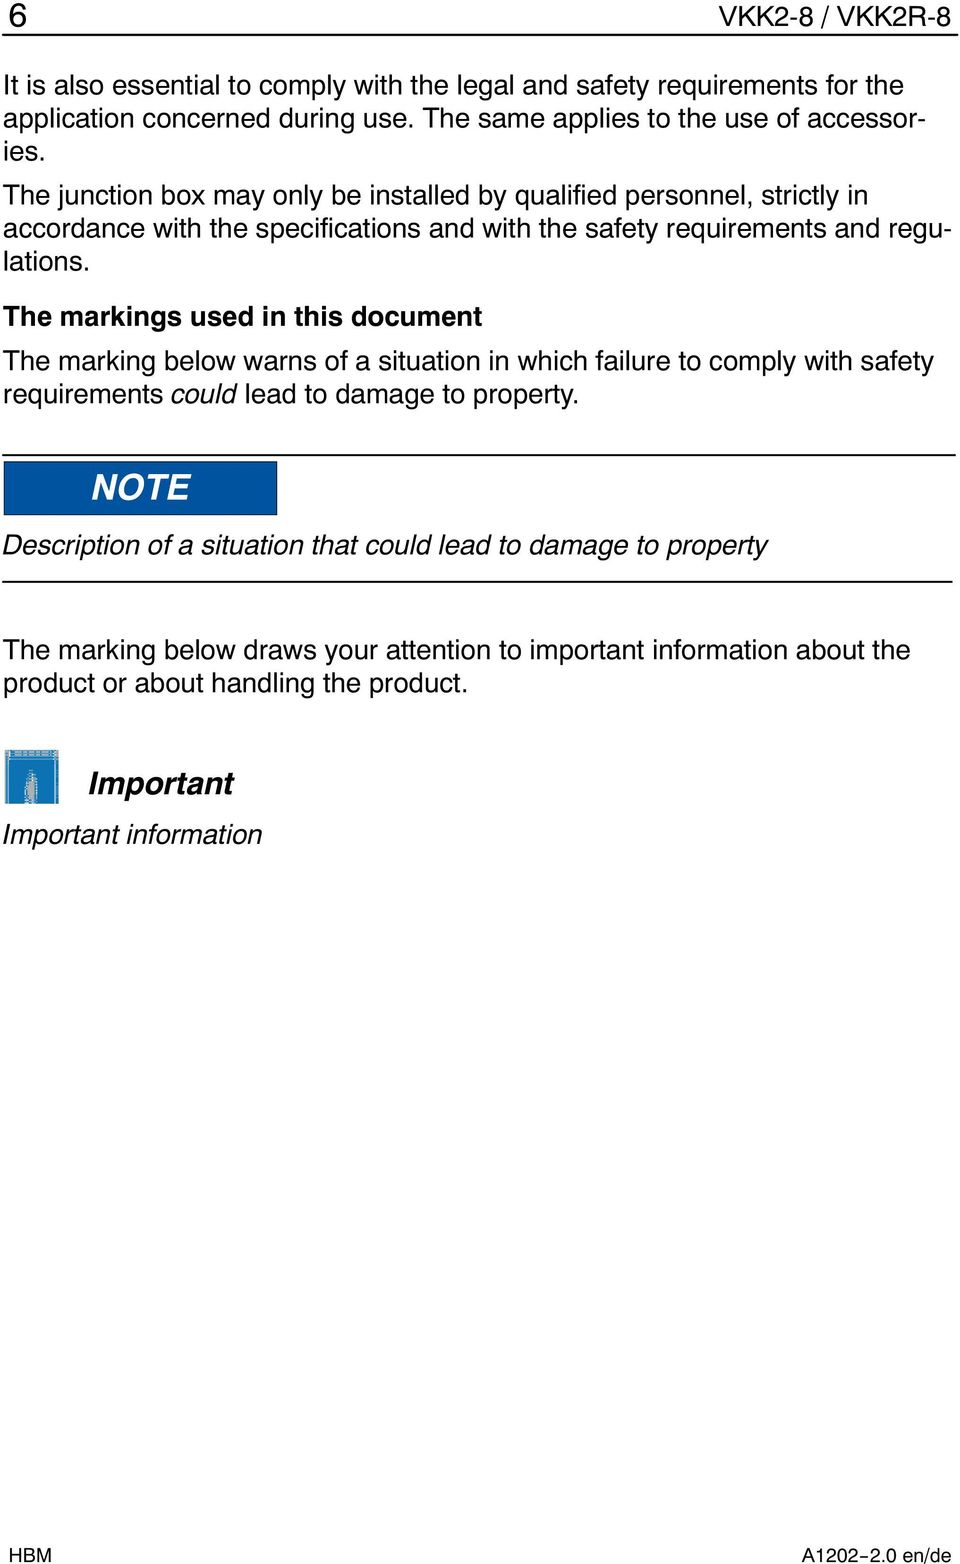 The markings used in this document The marking below warns of a situation in which failure to comply with safety requirements could lead to damage to property.